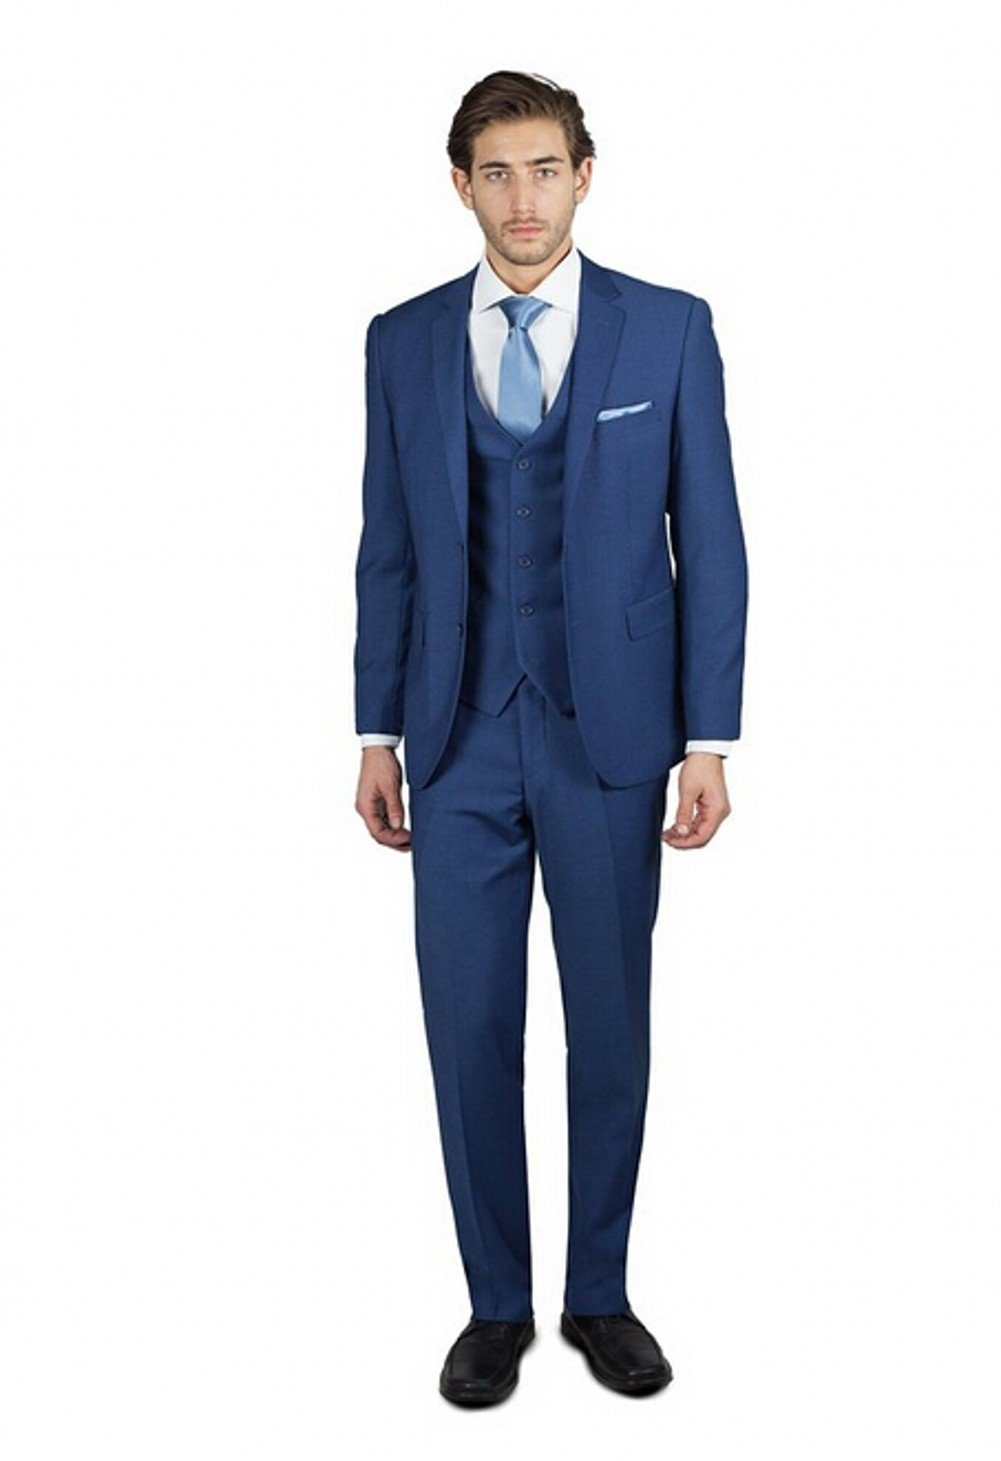 Love Dress Men's Three Piece Blend Suit in Many Colors Wedding Party Gown Blue 5XL